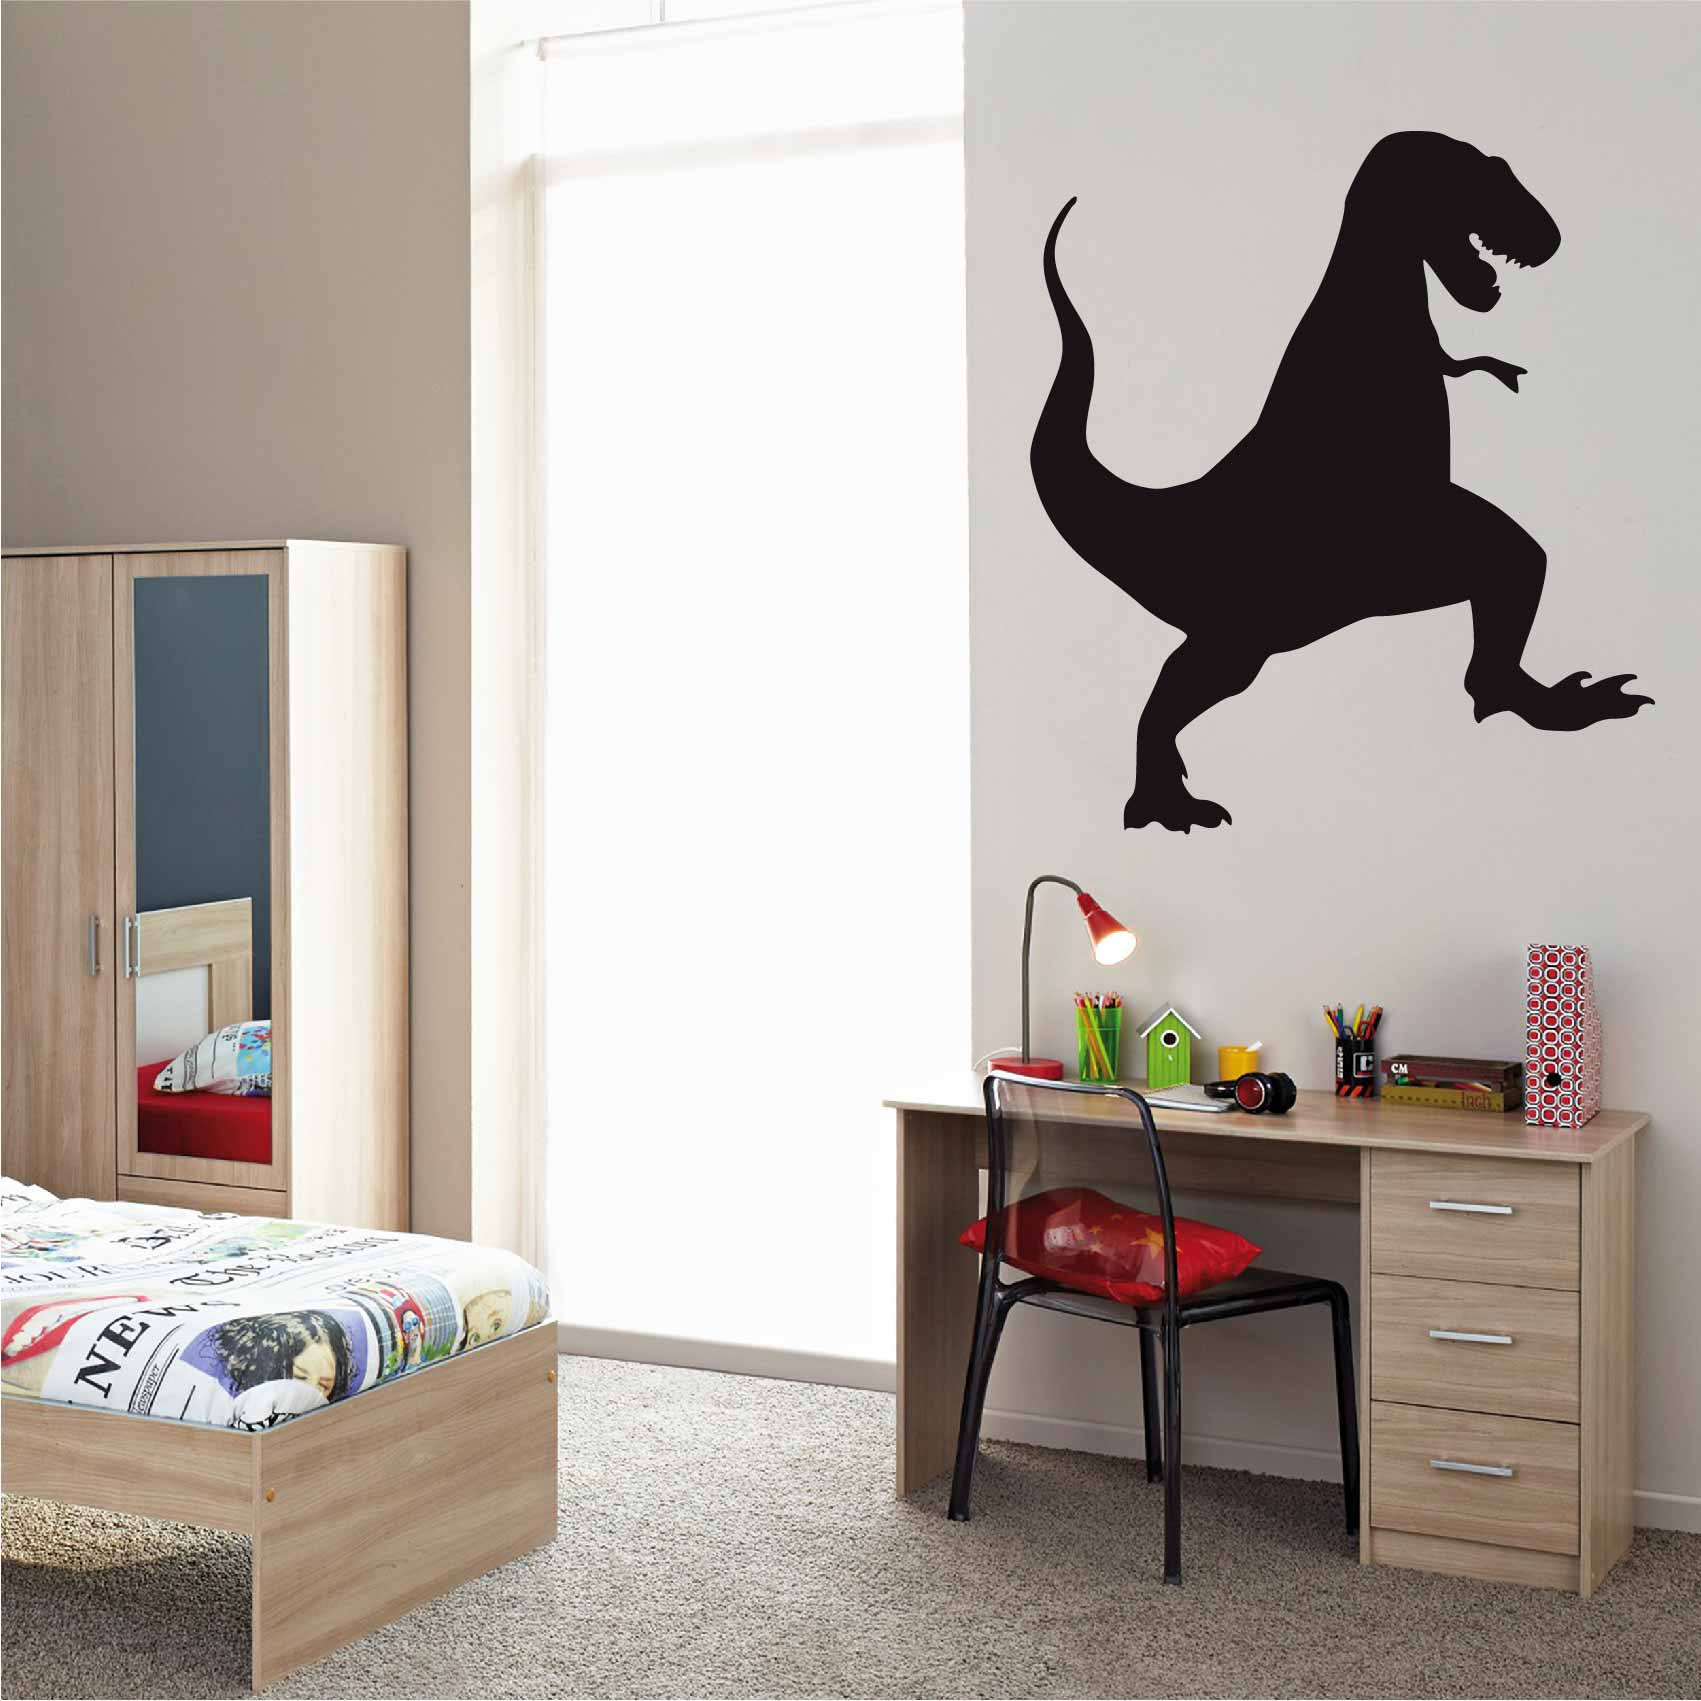 Chambre Dinosaure Stickers Dinosaure Géant